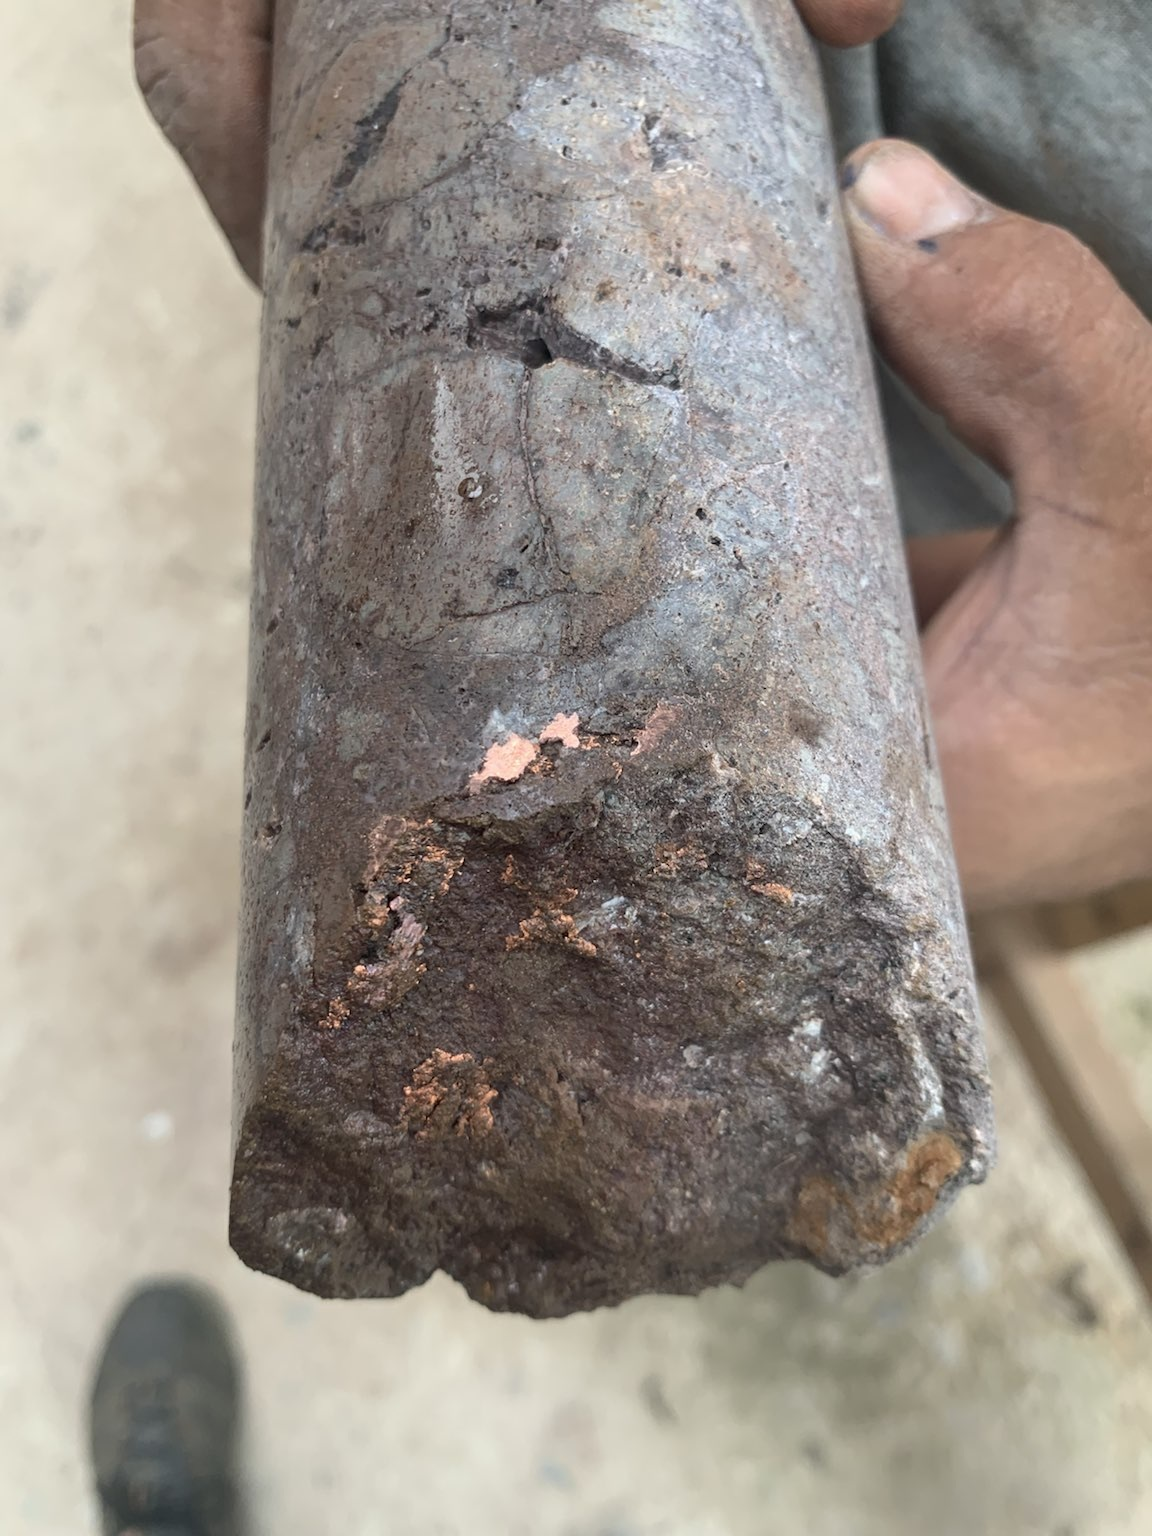 Drill core photos, showing sulphide-matrix breccia from Caribe drill holes 25 and 28 and native copper from drill hole 27. Results awaited